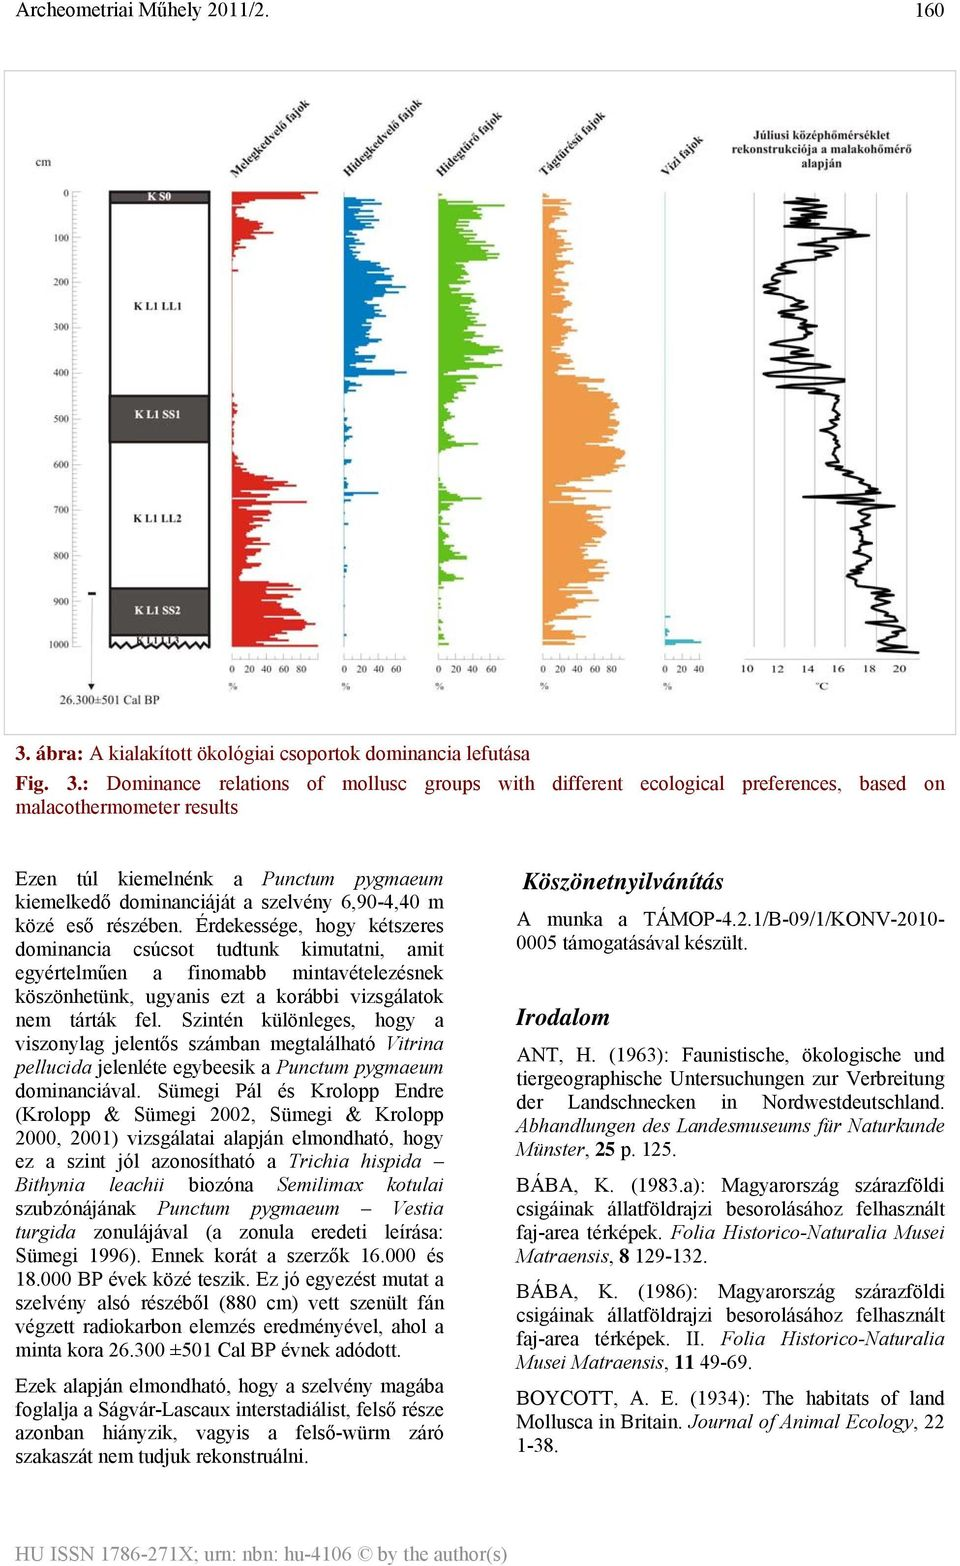 : Dominance relations of mollusc groups with different ecological preferences, based on malacothermometer results Ezen túl kiemelnénk a Punctum pygmaeum kiemelkedő dominanciáját a szelvény 6,90-4,40